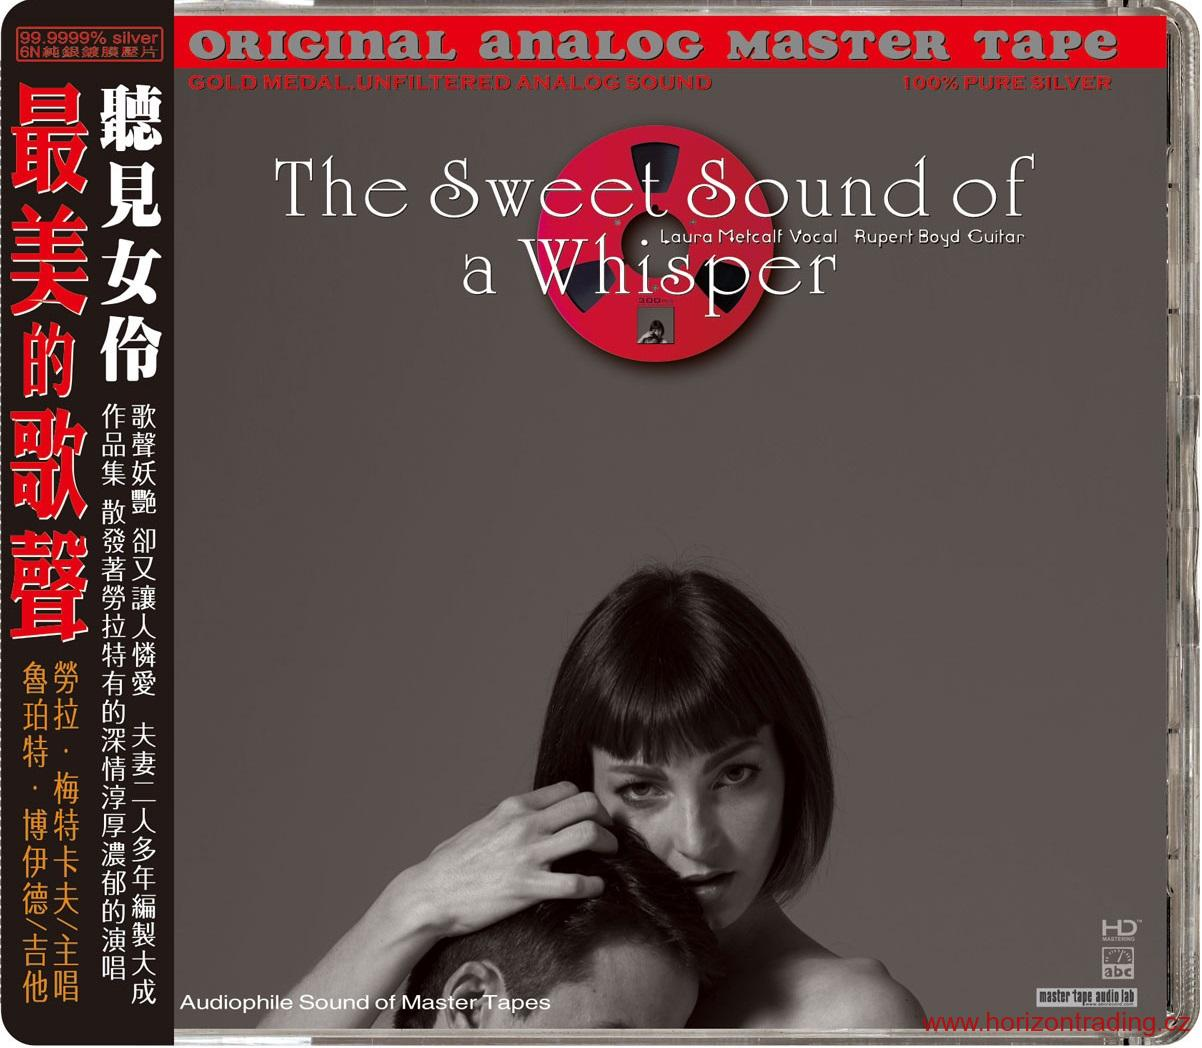 ABC Record - The Sweet Sound of Whisper